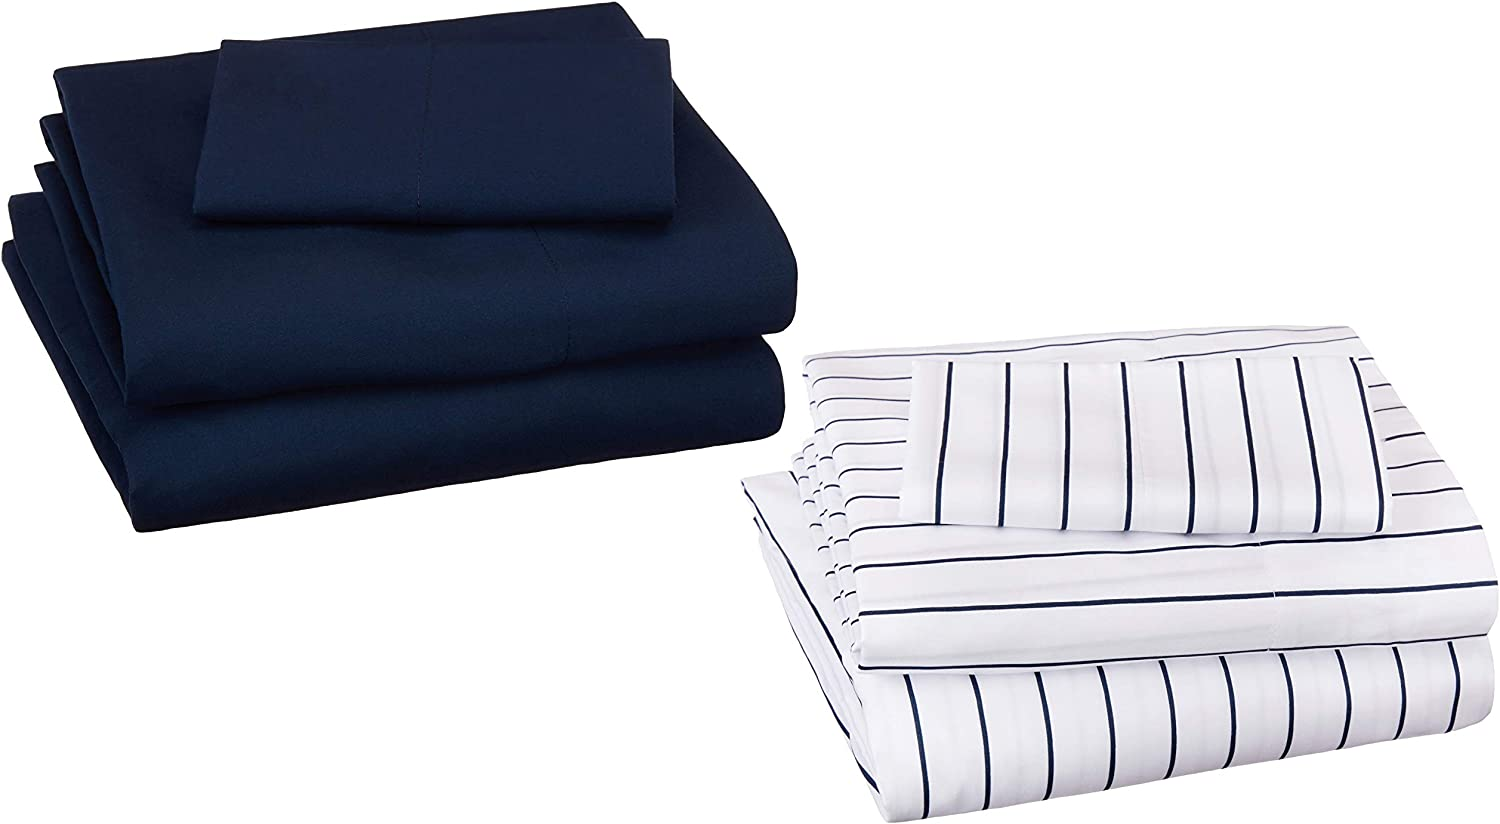 AmazonBasics Soft Microfiber Sheet Set with Elastic Pockets - Twin, Pinstripe/Navy, 2-Pack